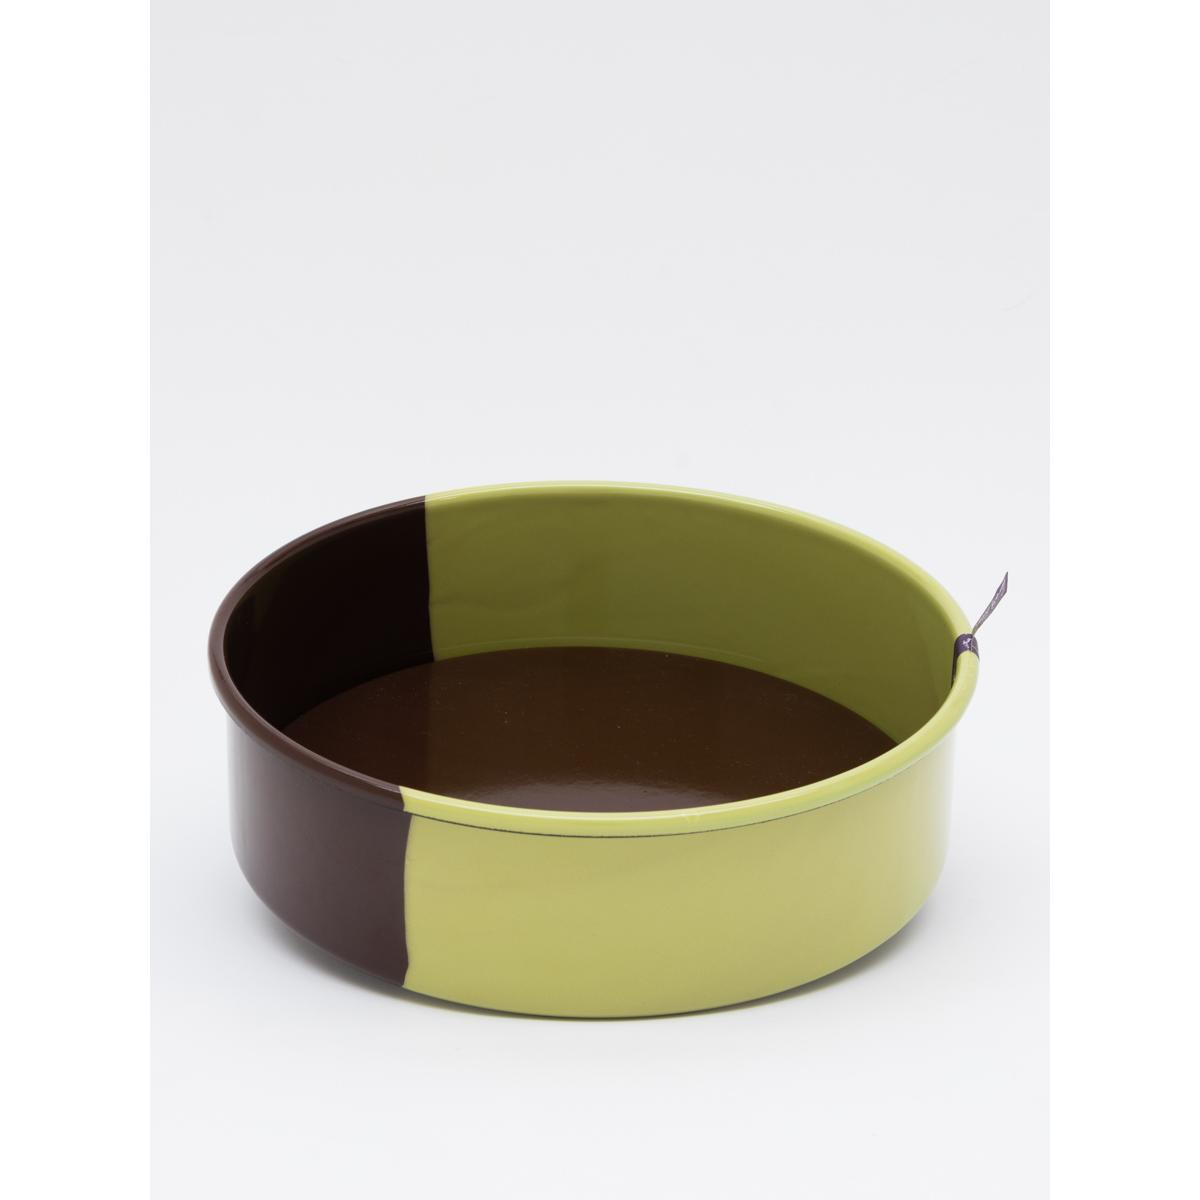 26cm enamel round cake form - Chocolate with green